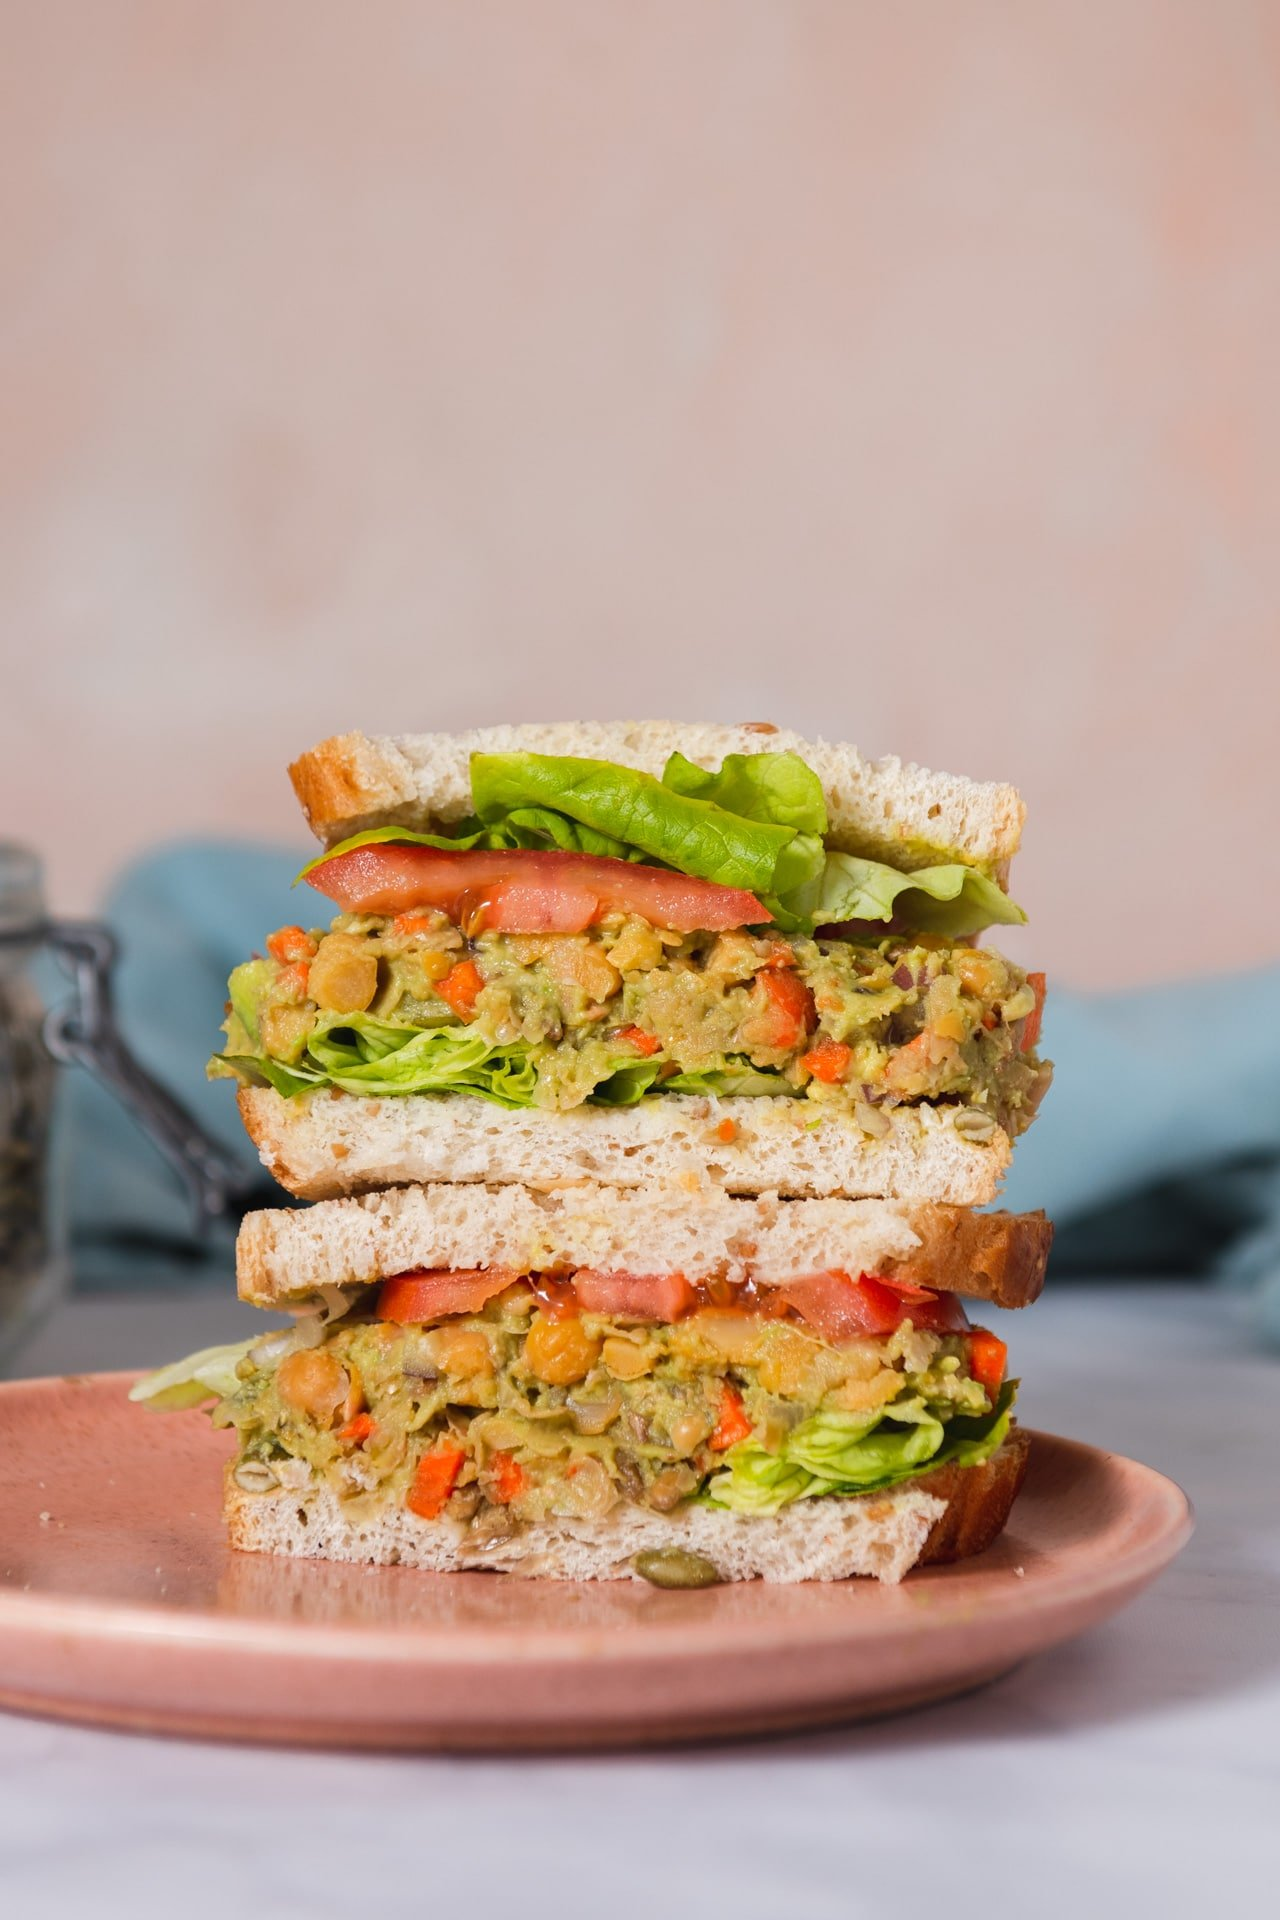 Two halves of chickpea sandwich stacked on top of each other